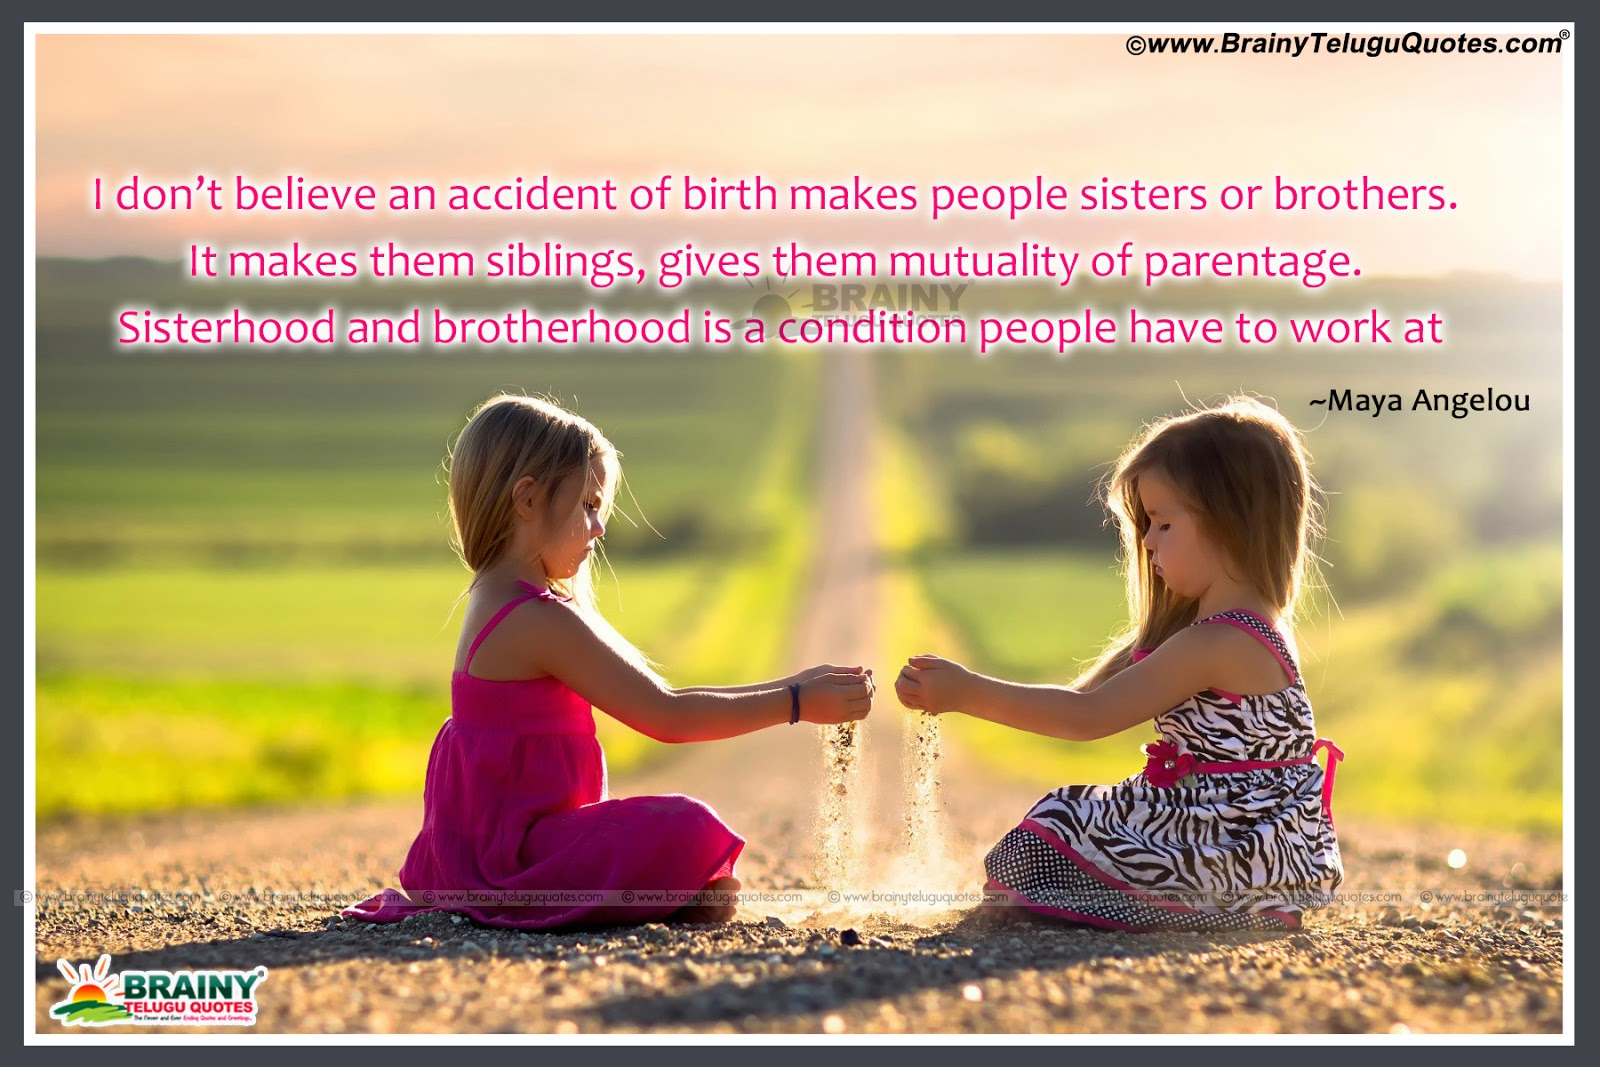 Cute Brother And Sister Quotes 200 Brother Quotessibling Quotes For Your Cute Brother